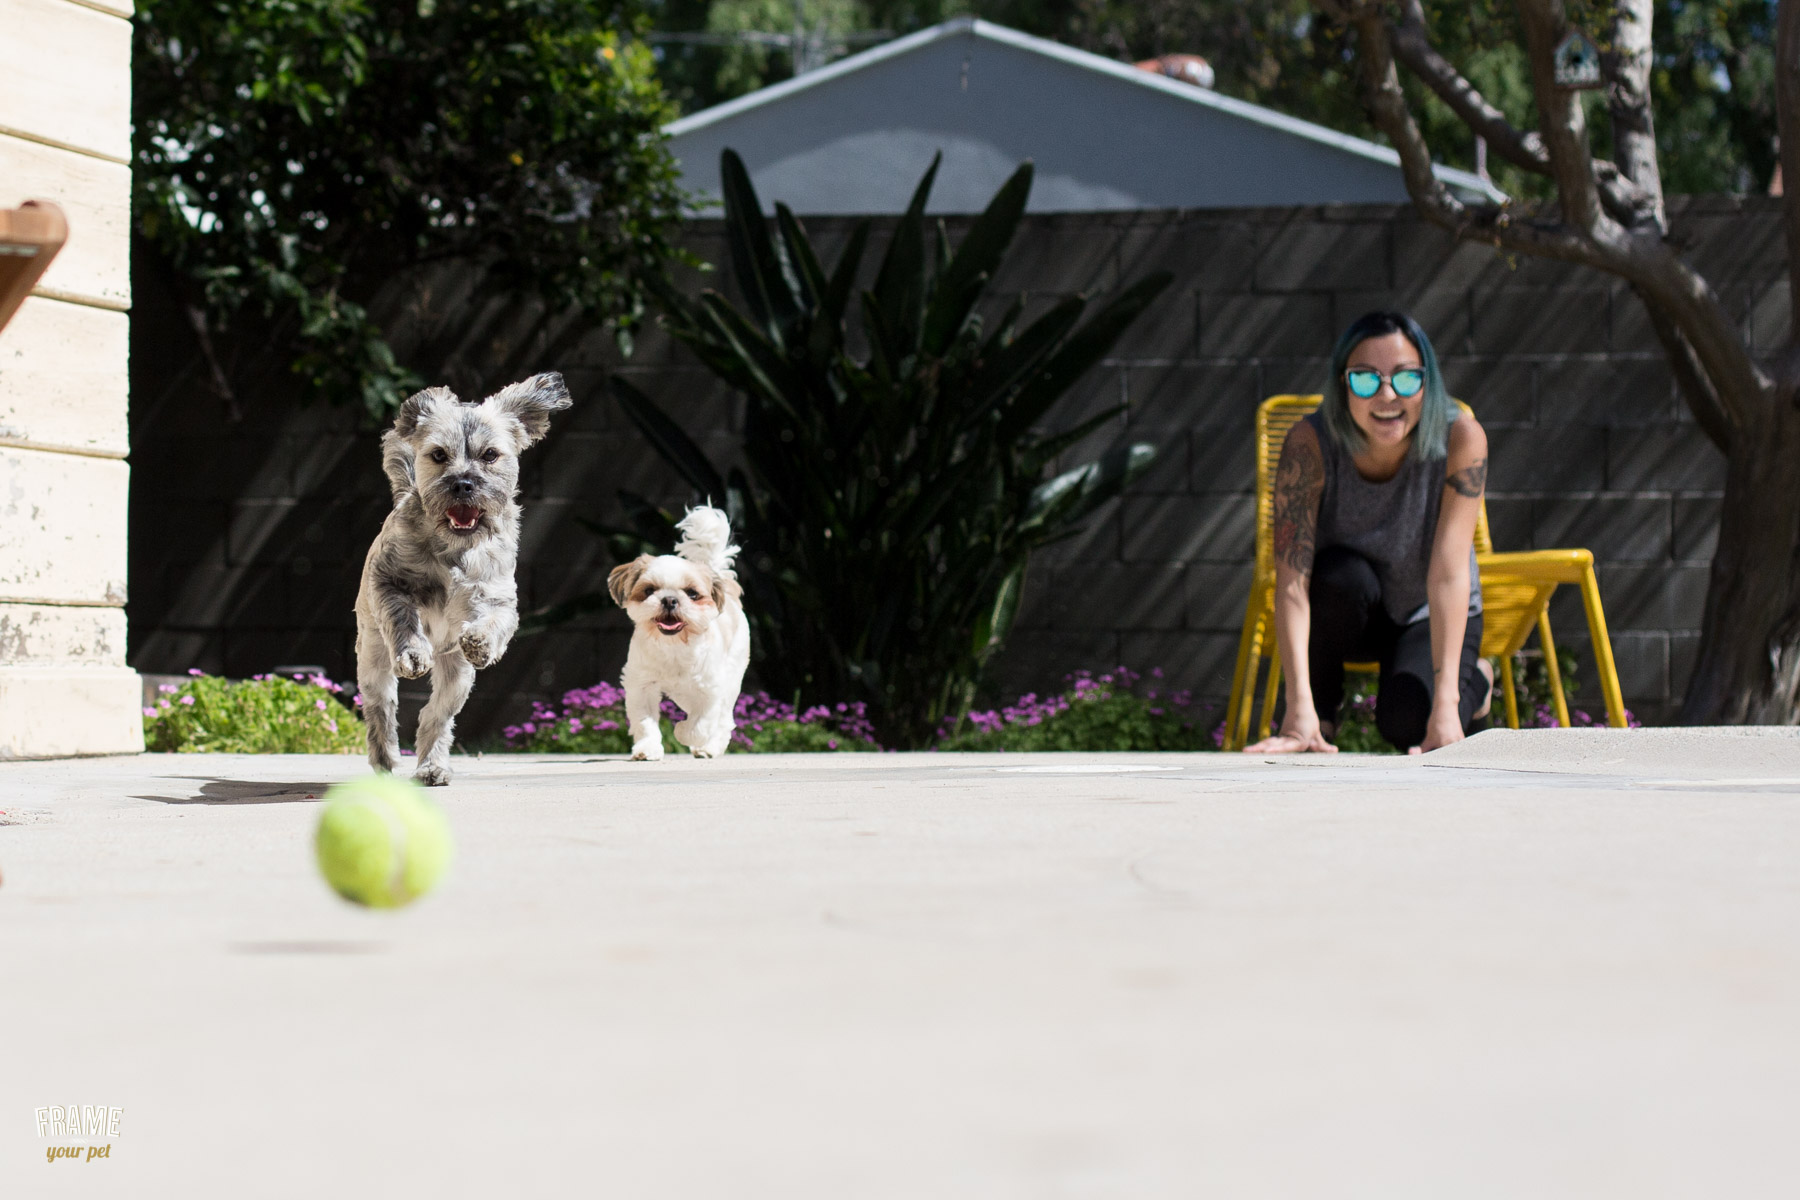 dogs-fetching-tennis-ball-pet-photography.jpg